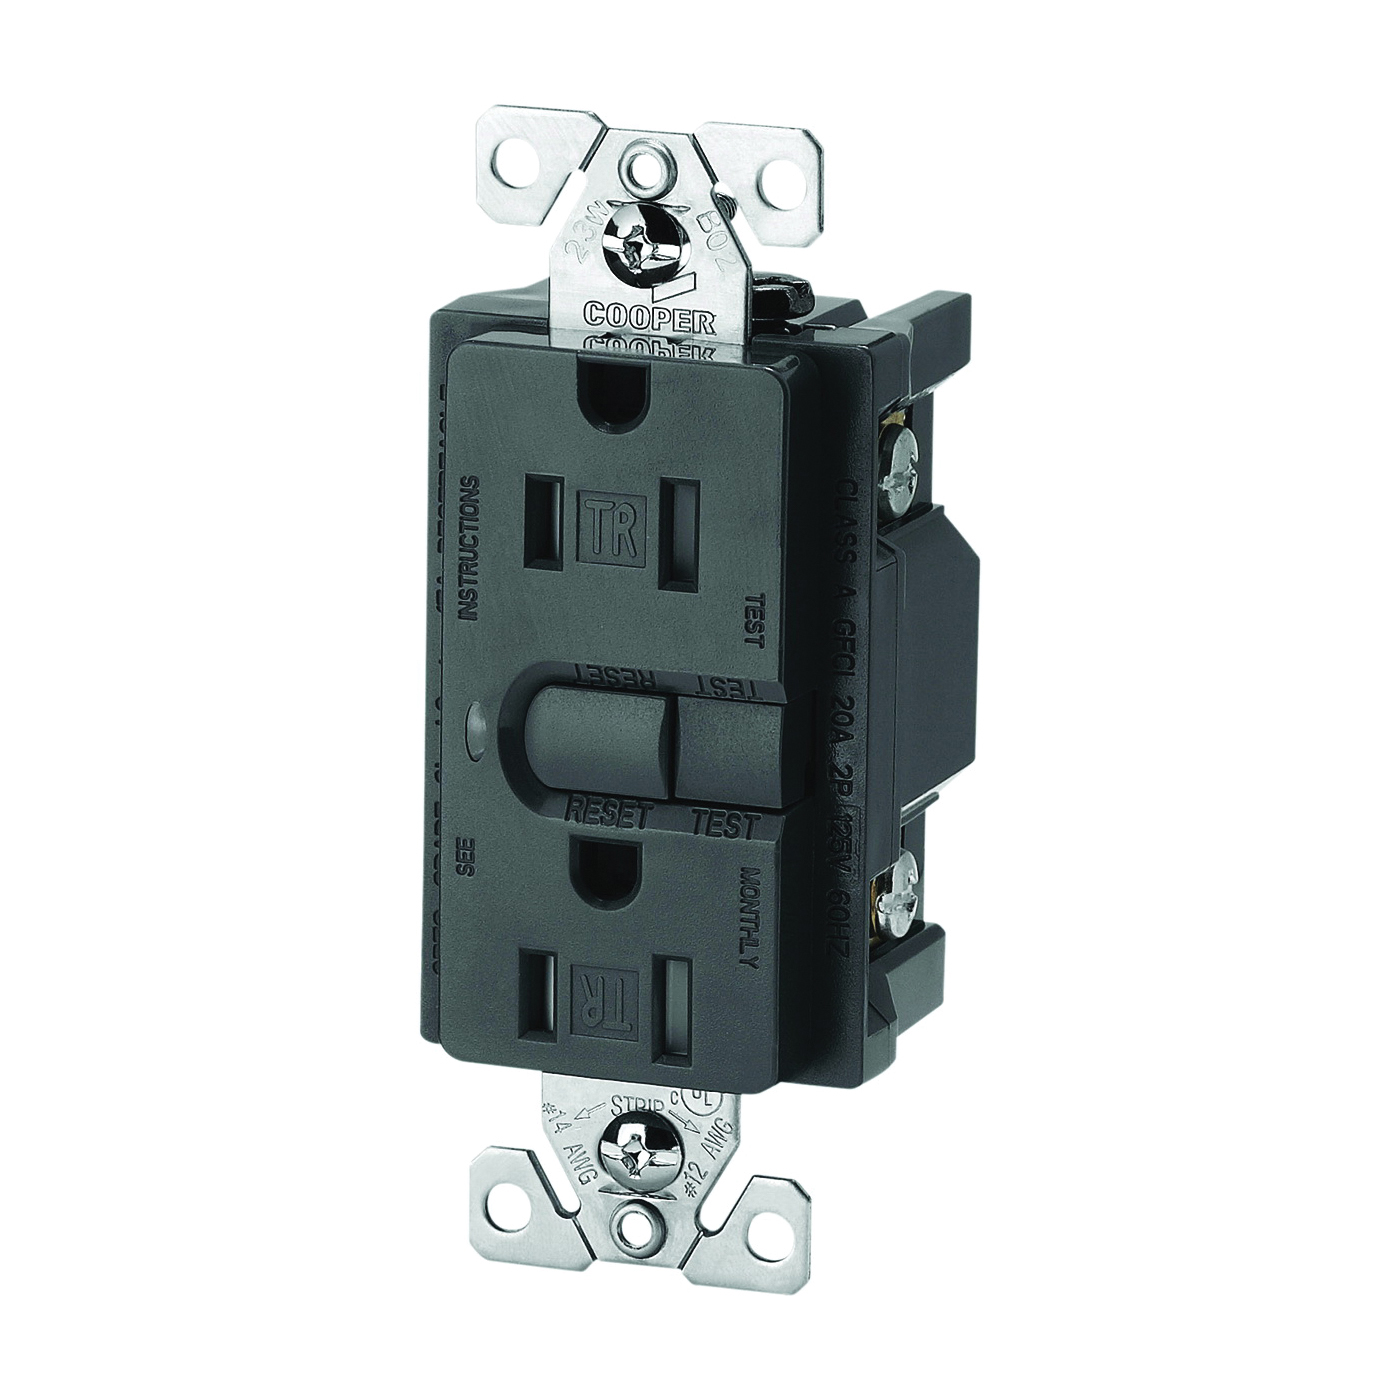 Picture of Eaton Wiring Devices 9566TRSSG Duplex GFCI Receptacle, 2-Pole, 15 A, 125 V, Back, Side Wiring, NEMA: 5-15R